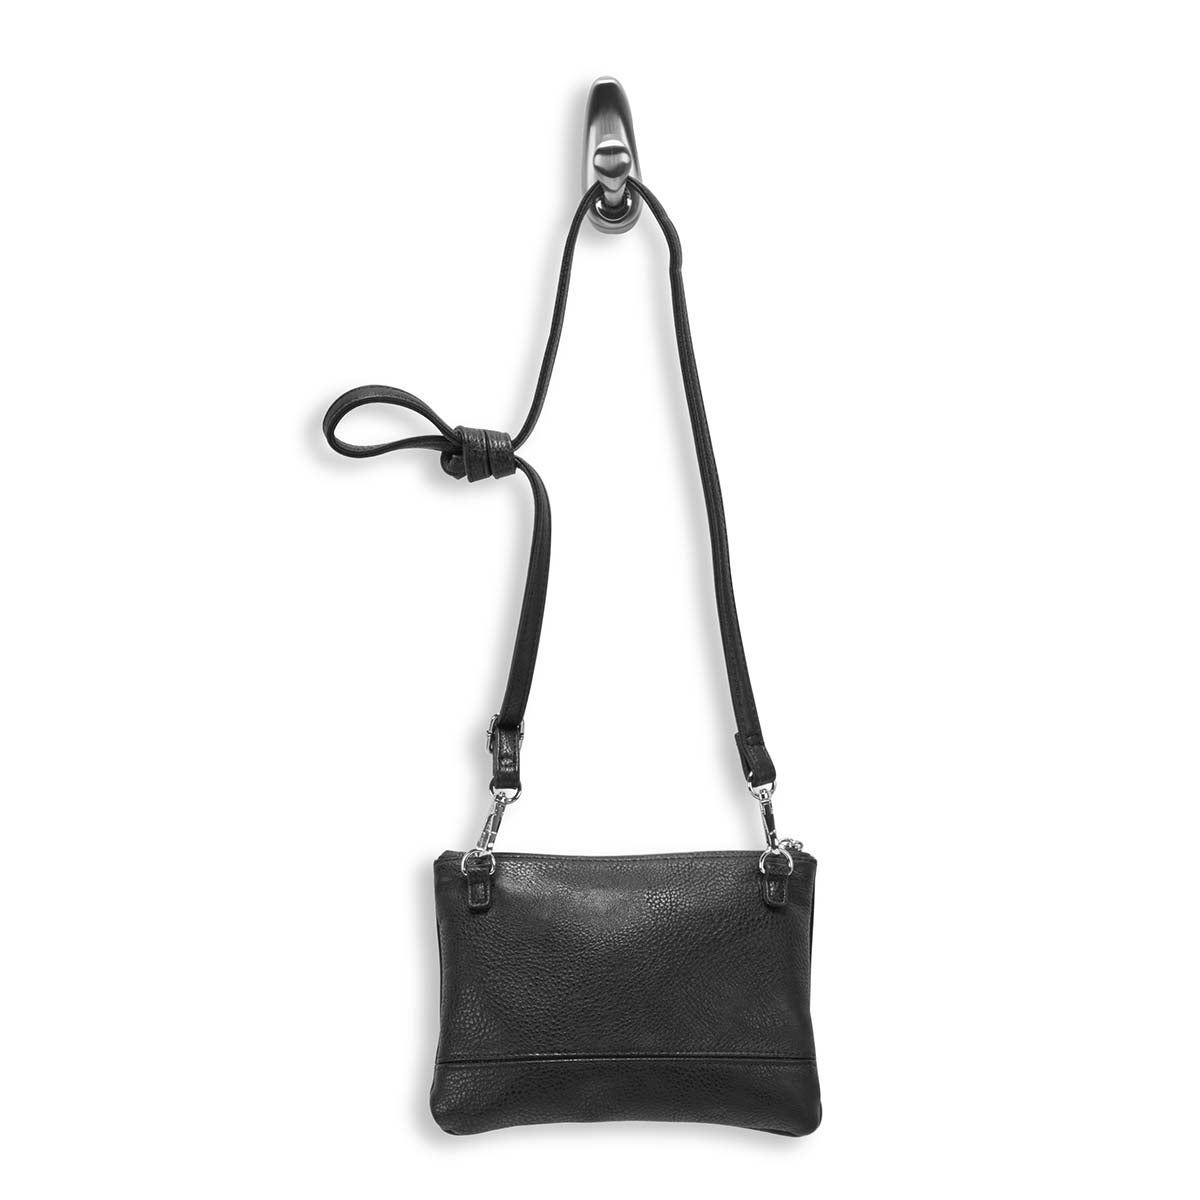 Lds Roots73 blk flat top zip cross body